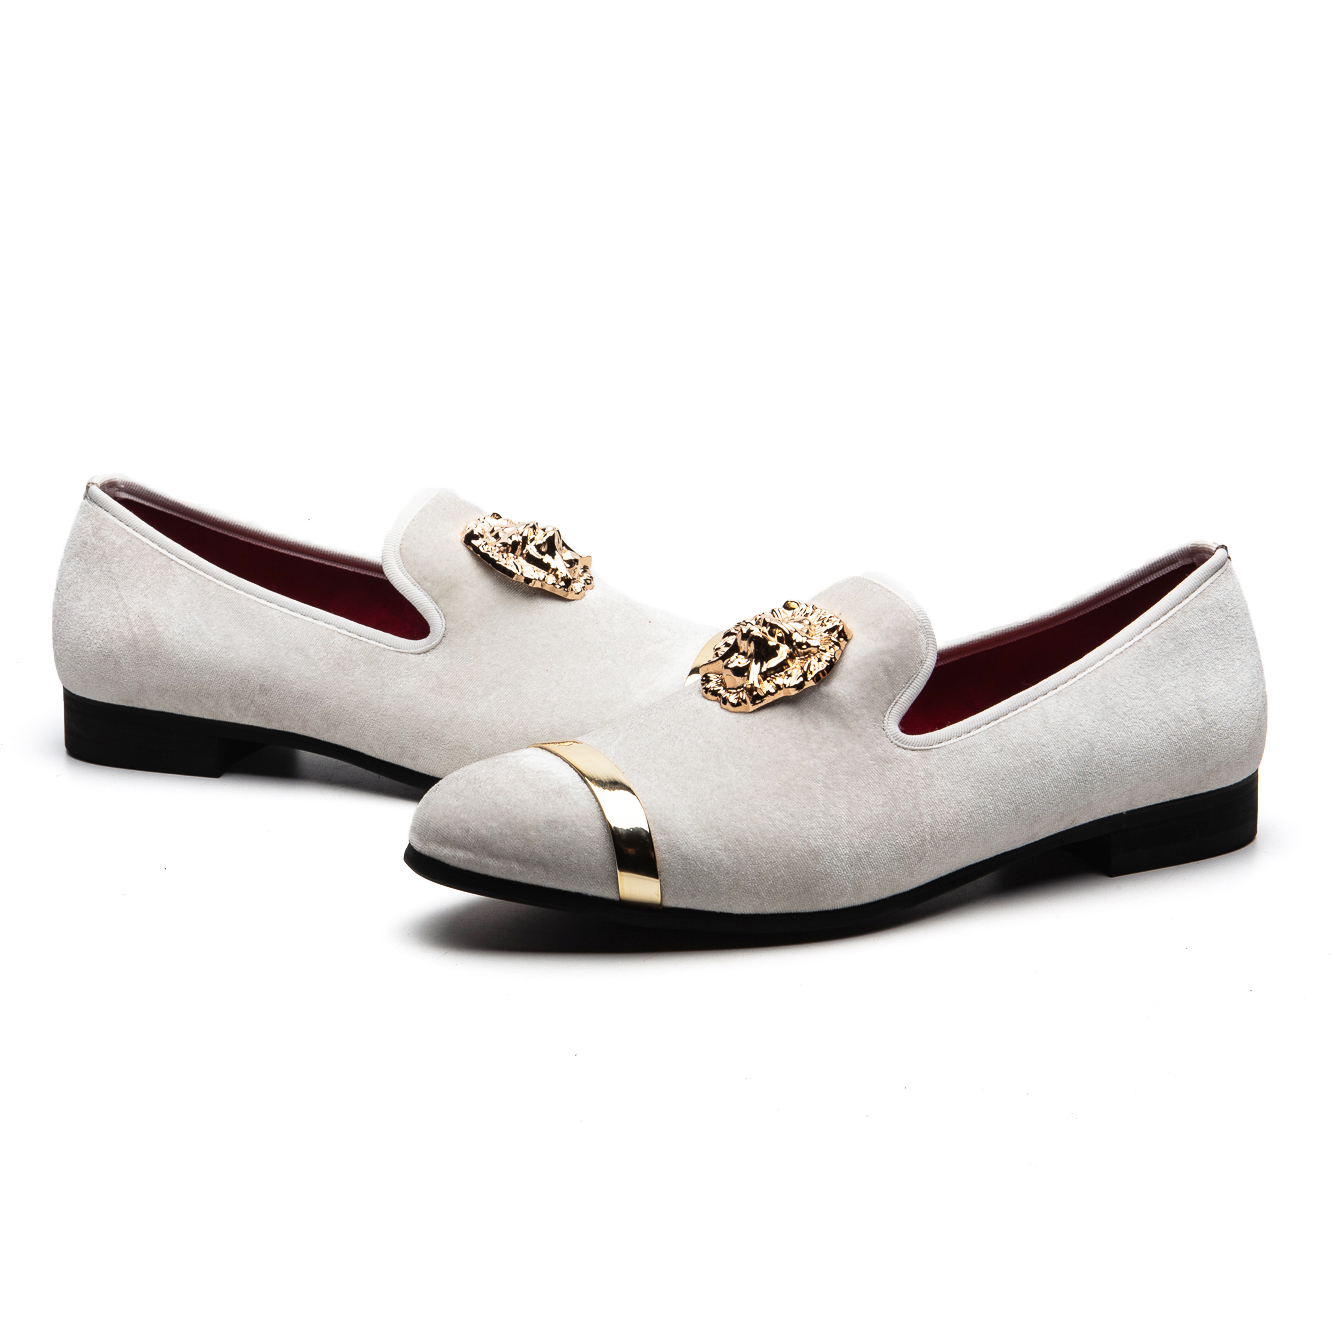 MEIJIANA Big Size Loafers 2019 Wedding Luxury Casual Shoes